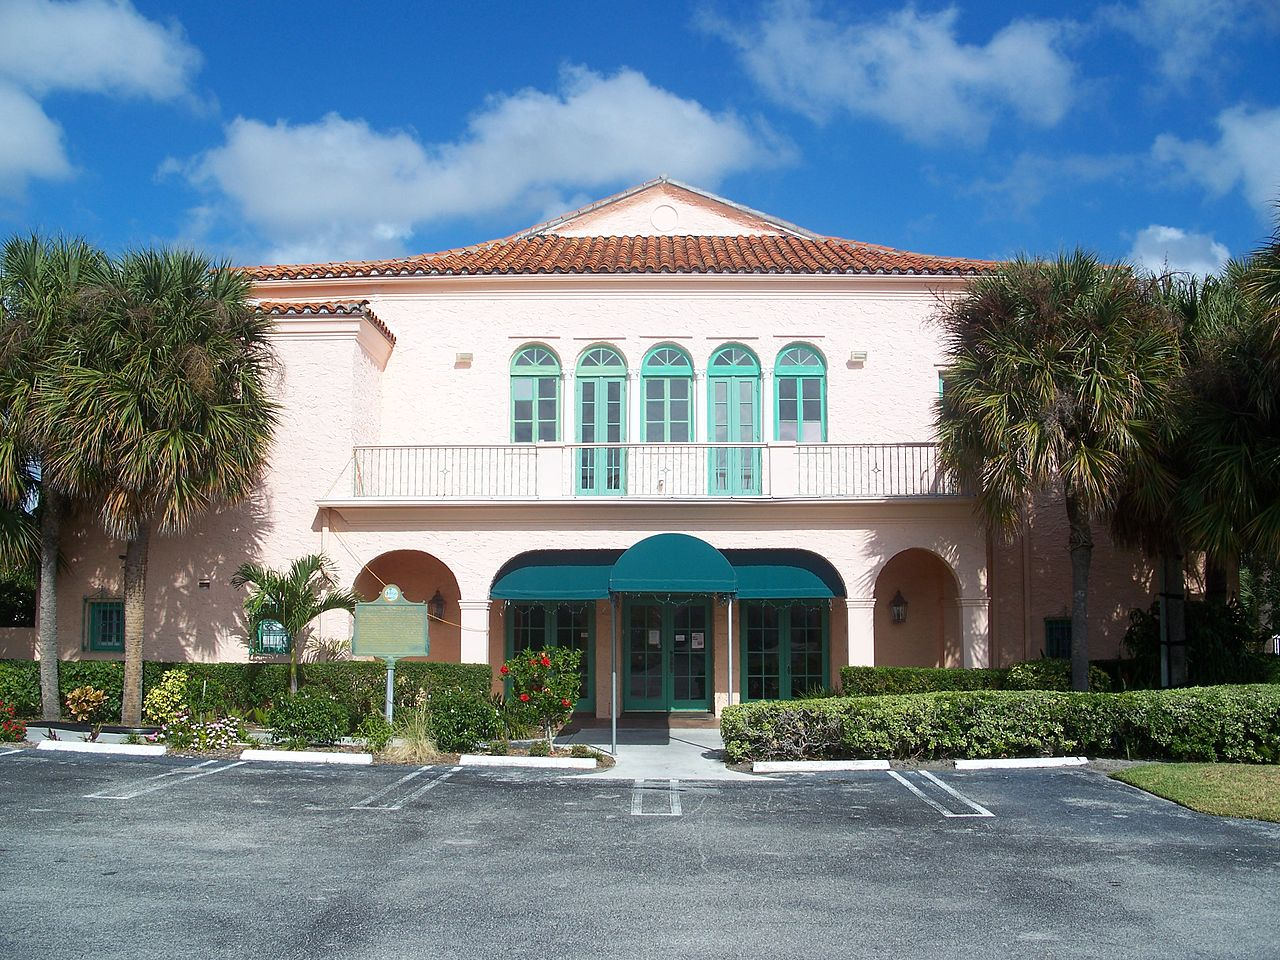 Boynton Beach Woman's Club